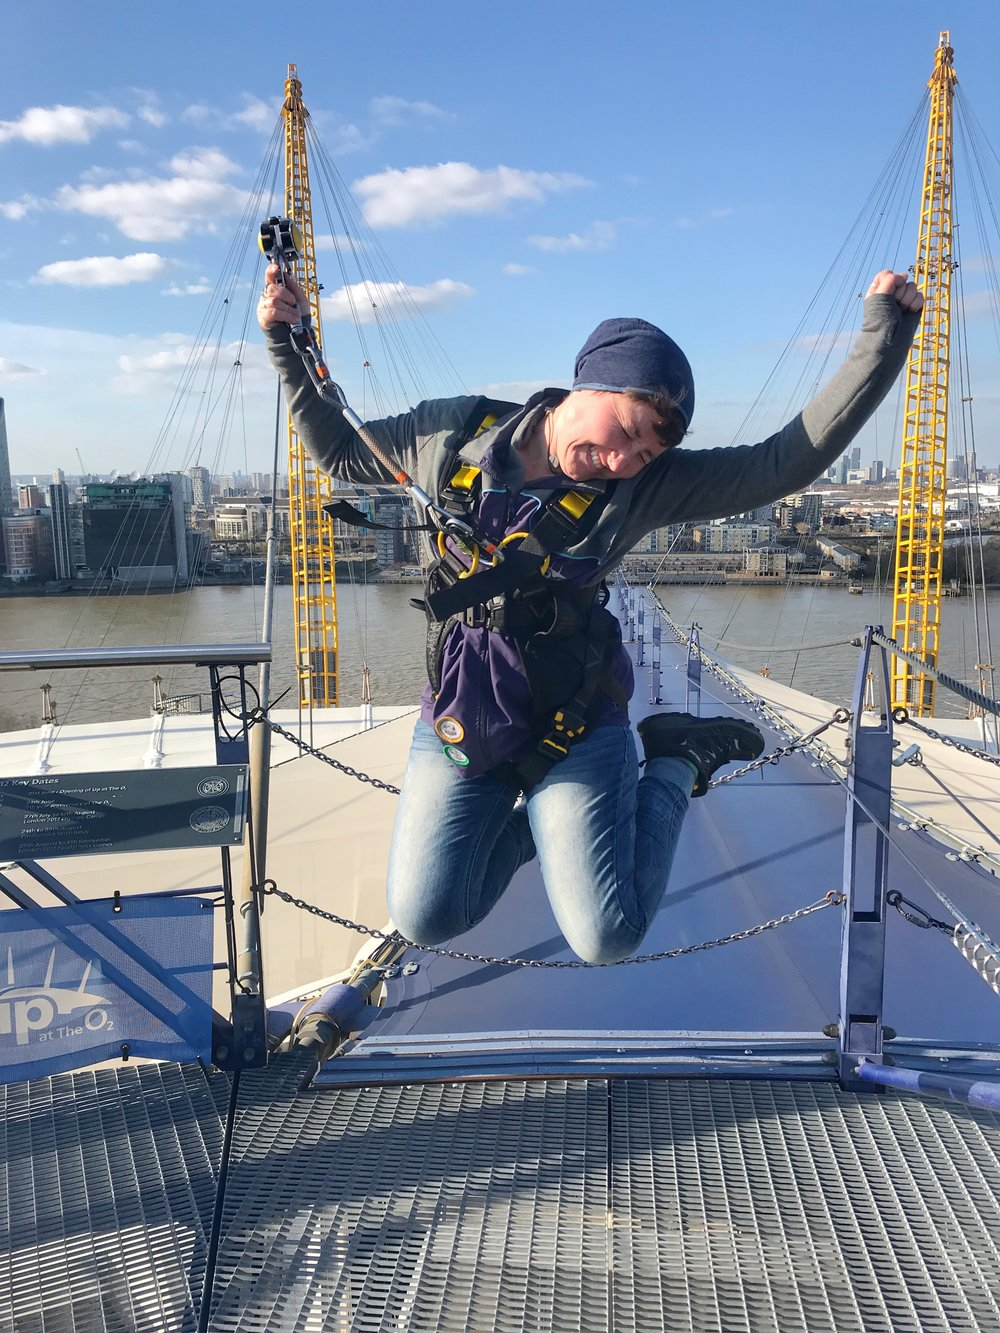 Things to do in London - Up at the O2